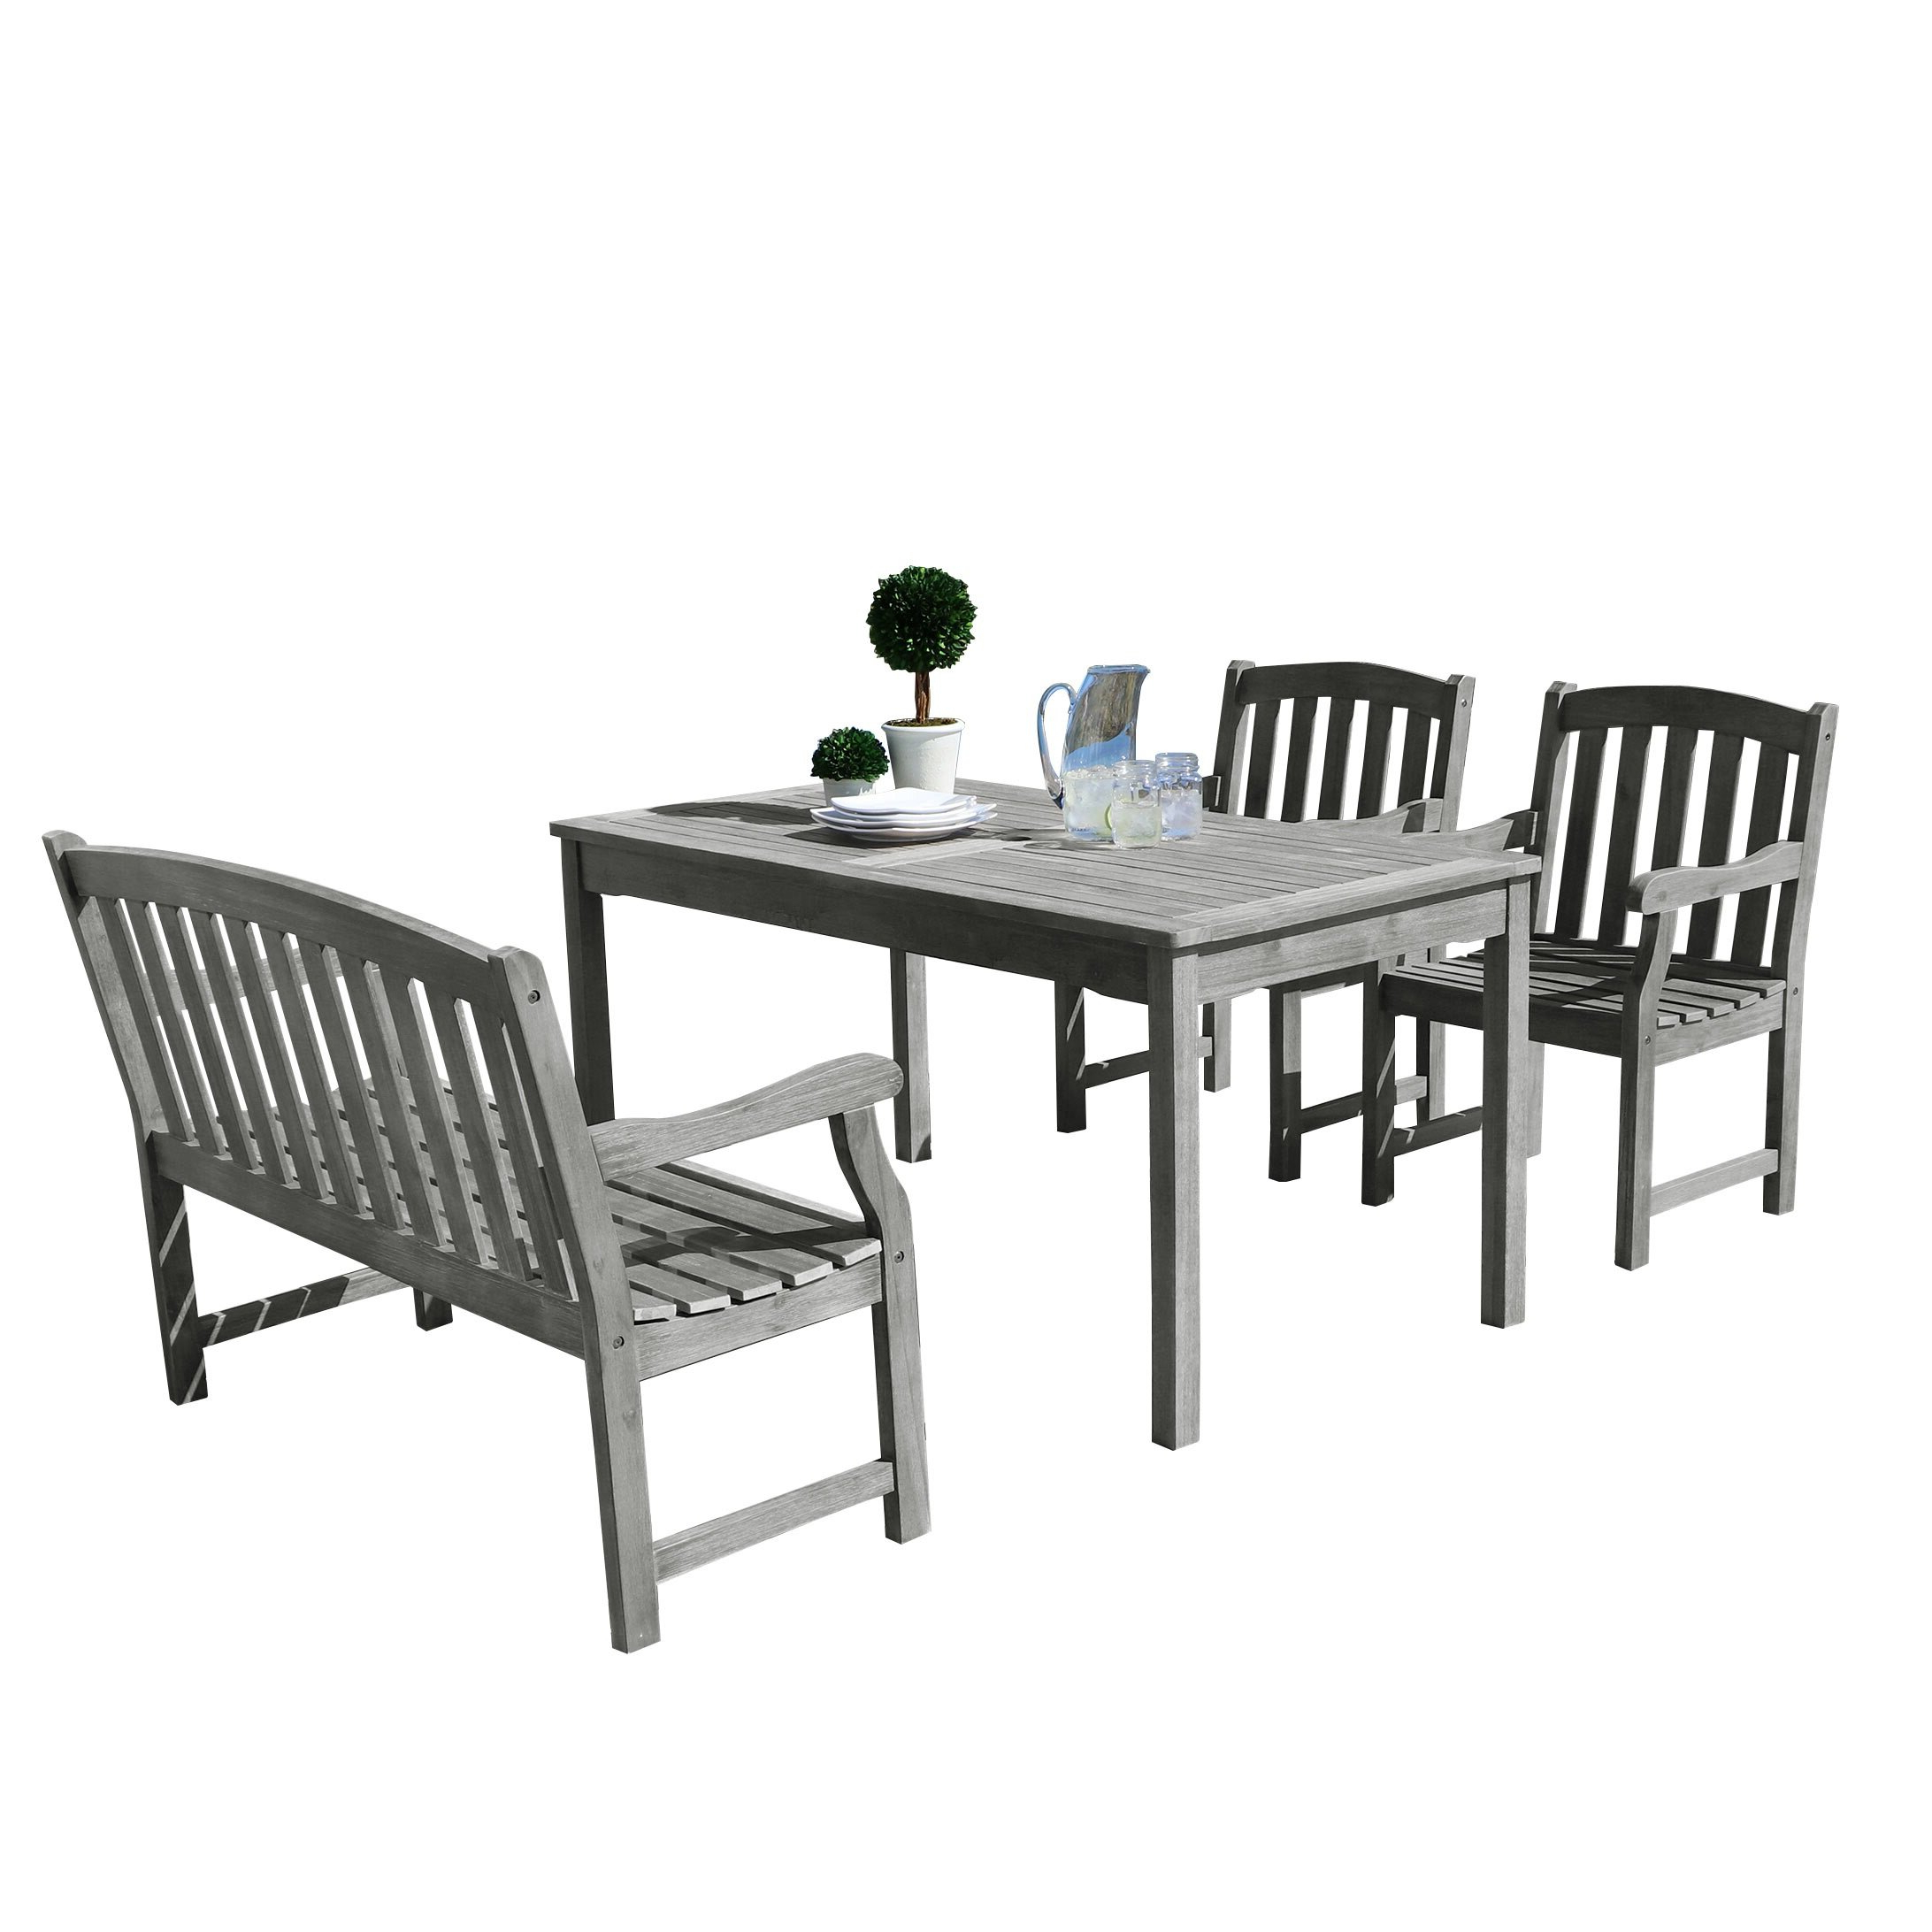 2020 Shelbie Wooden Garden Benches Throughout Shelbie 4 Piece Dining Set (View 27 of 30)